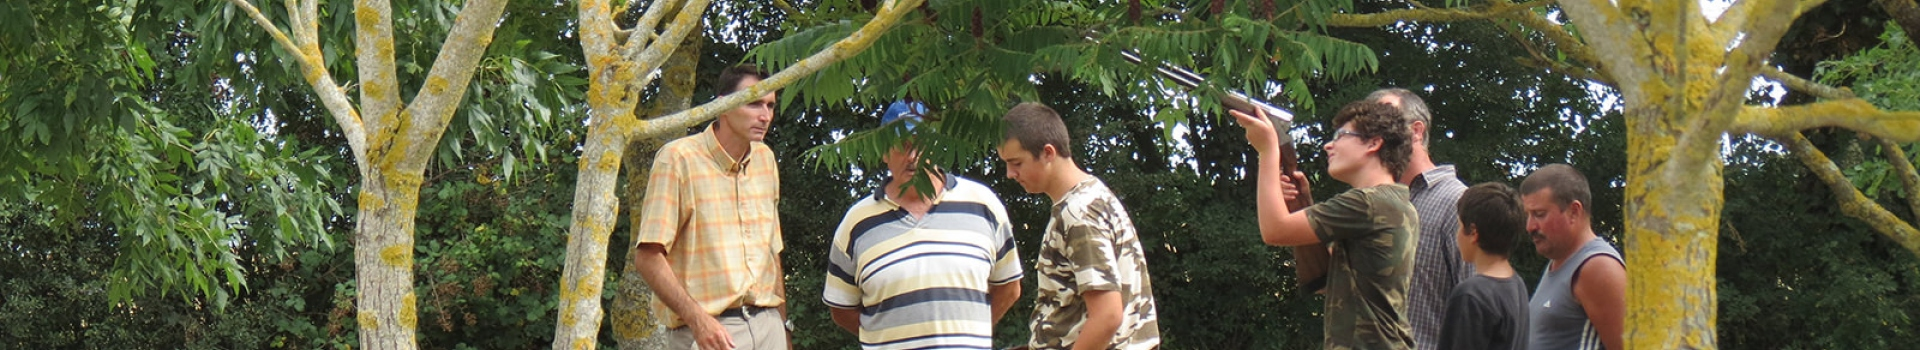 Formation chasse accompagnée